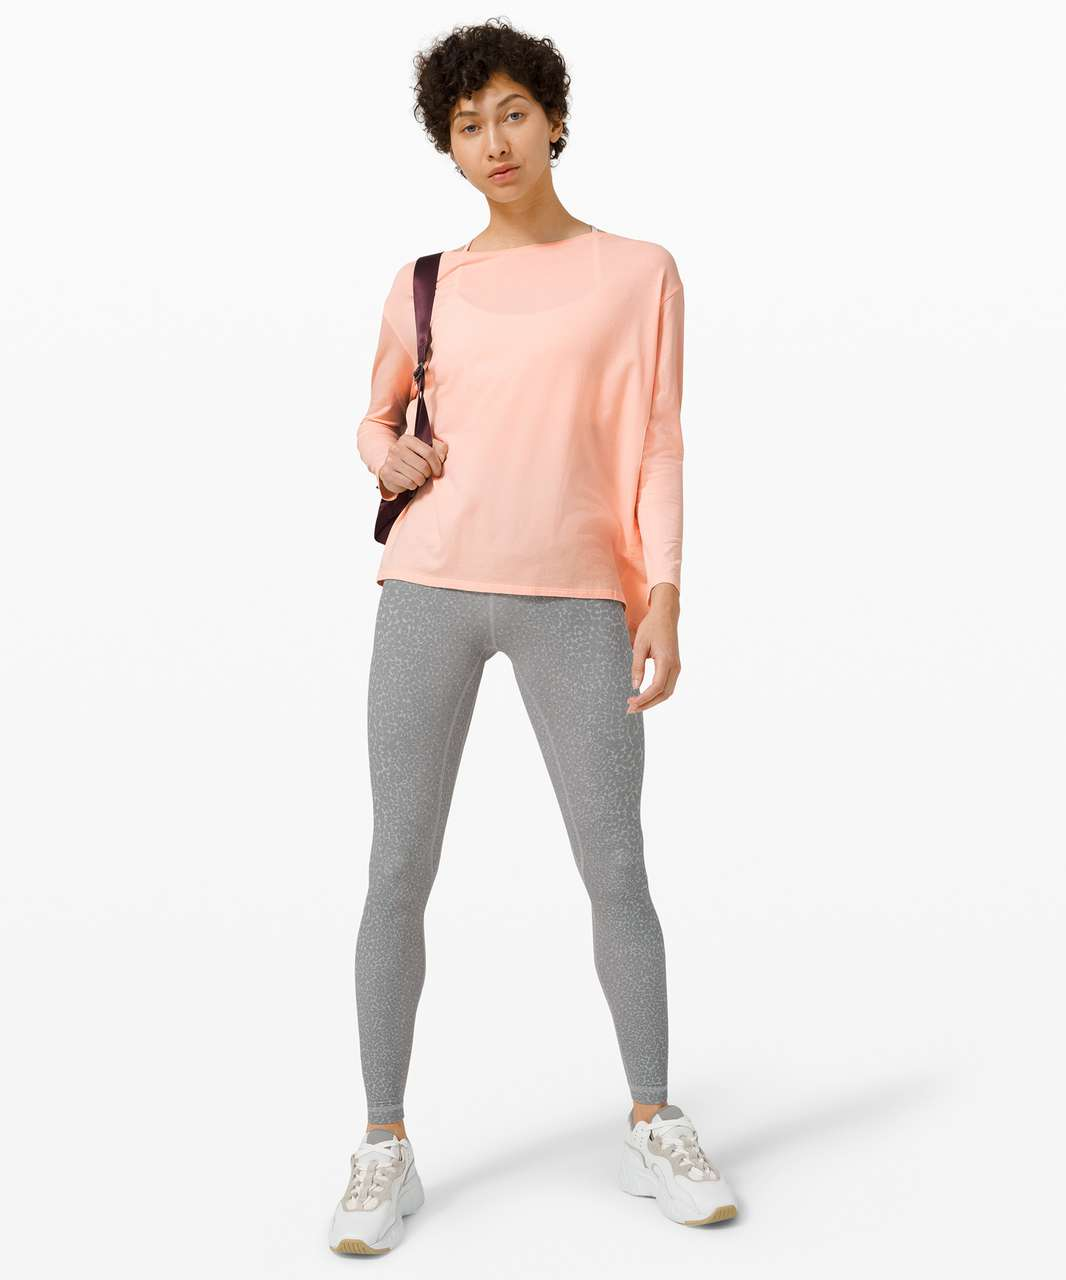 Lululemon Back In Action Long Sleeve - Ballet Slipper